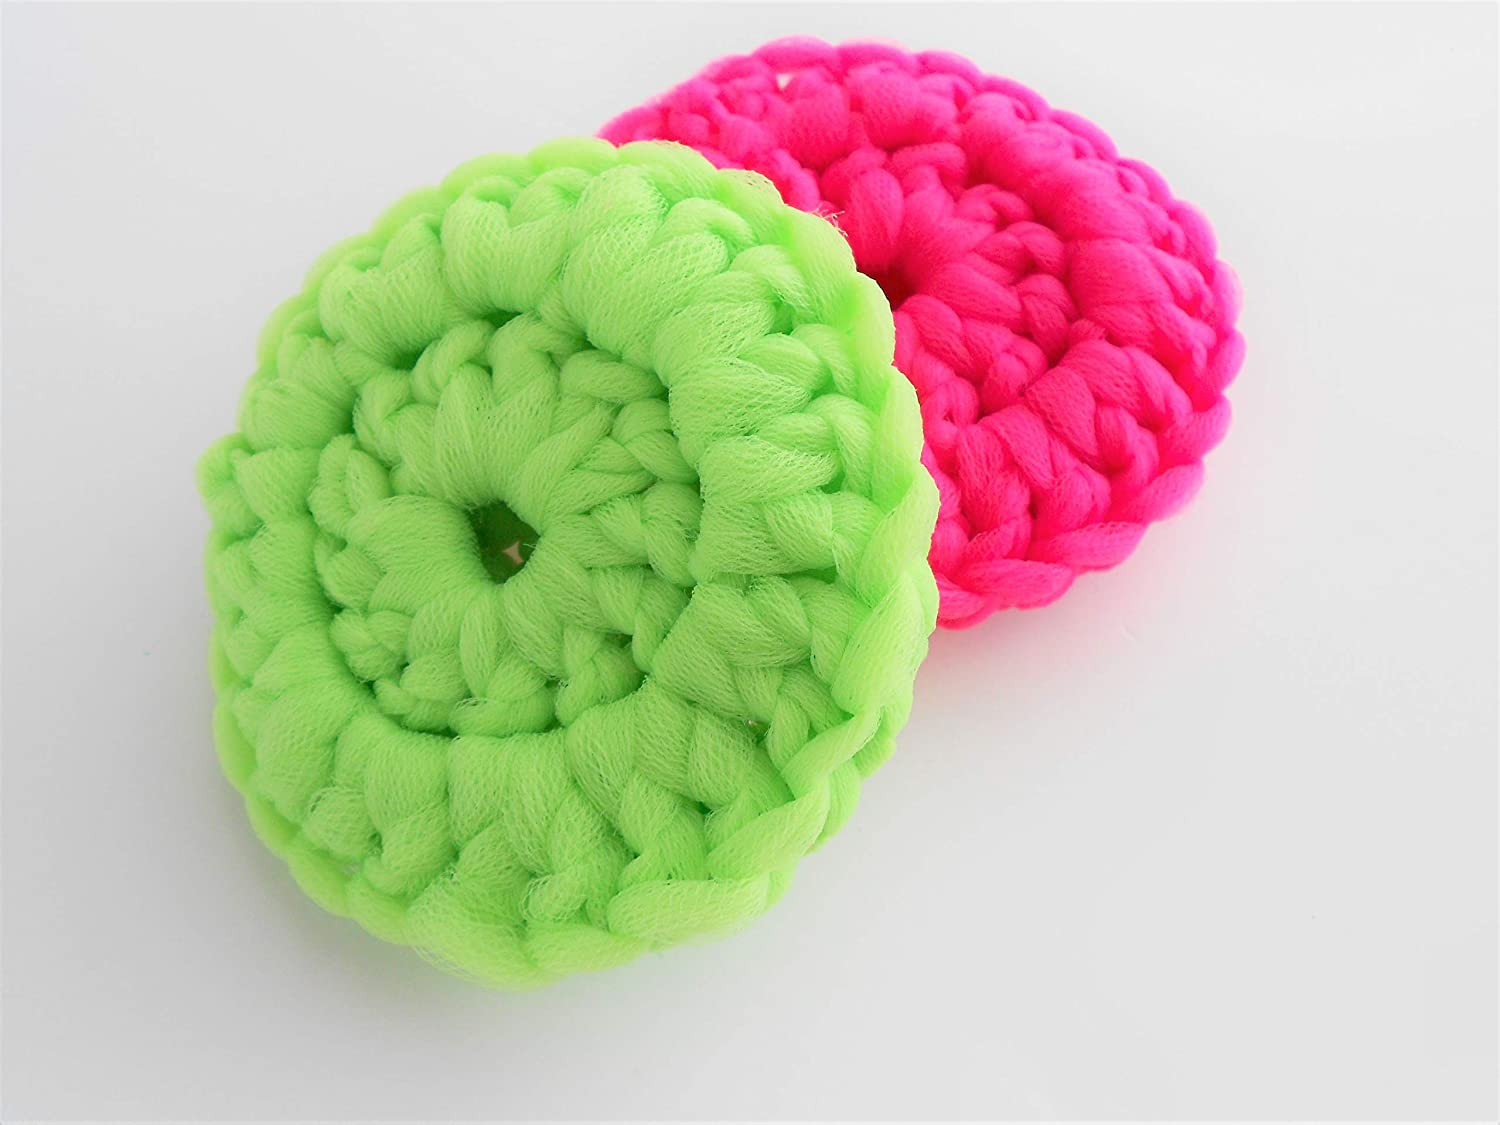 Set of 2 Bright Pink and Neon Scrubbies size Round Green New Tulsa Mall York Mall 3.5 Inc